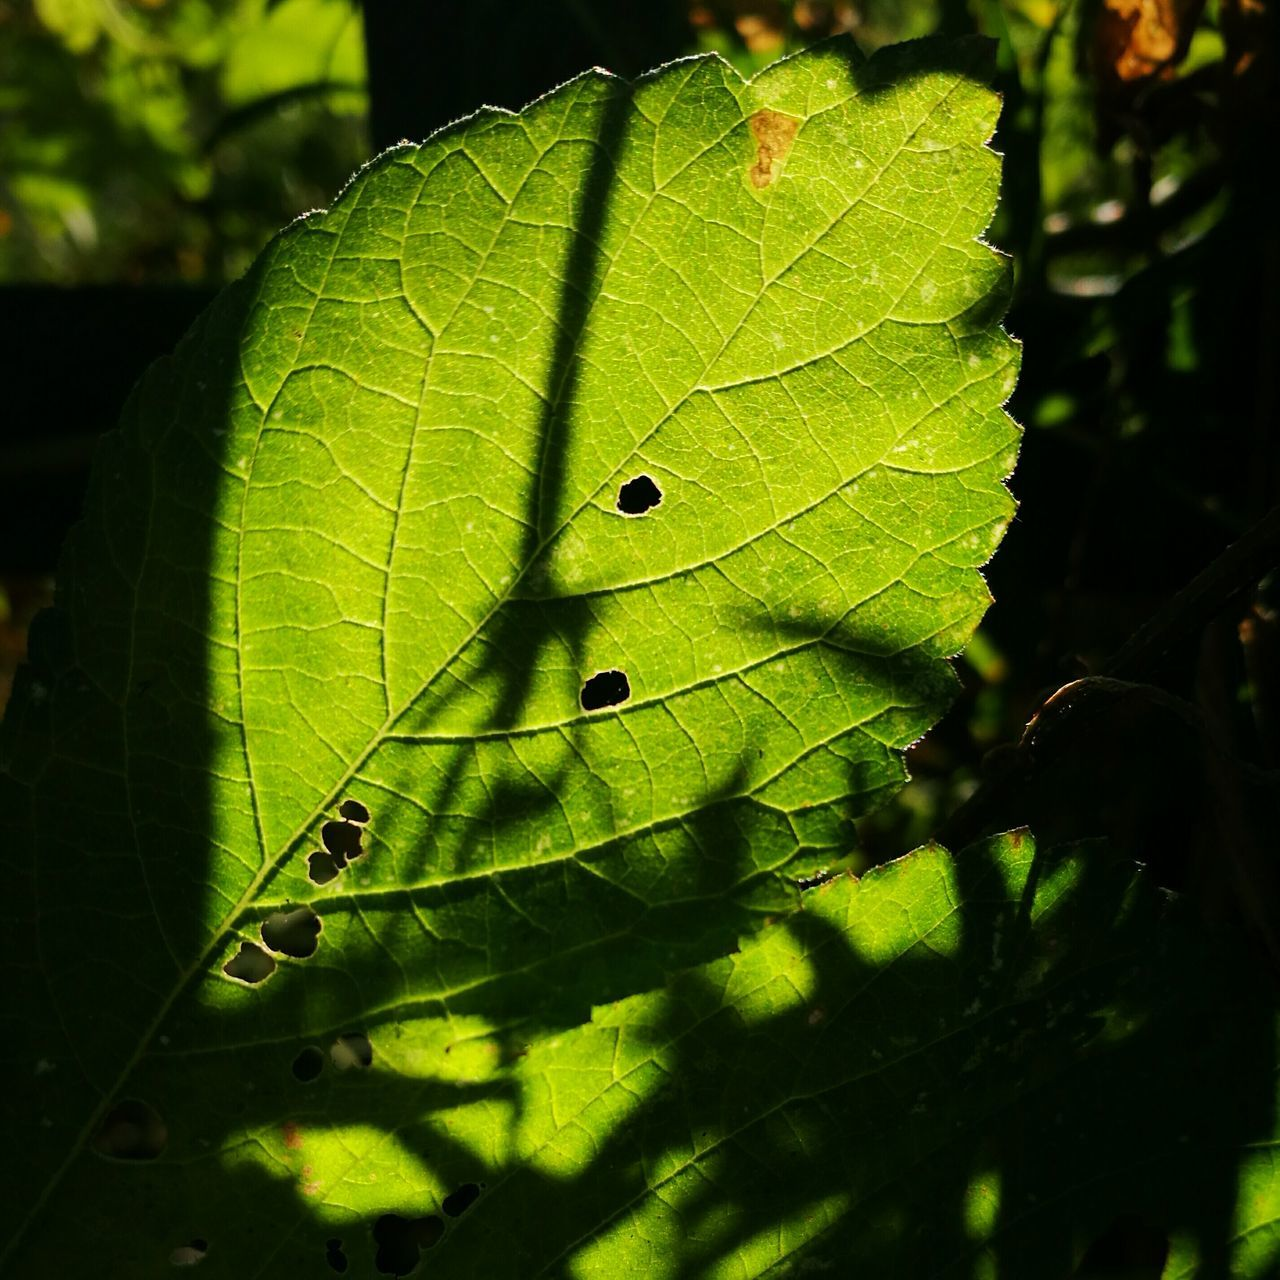 leaf, green color, close-up, nature, no people, growth, day, outdoors, plant, beauty in nature, fragility, animal themes, freshness